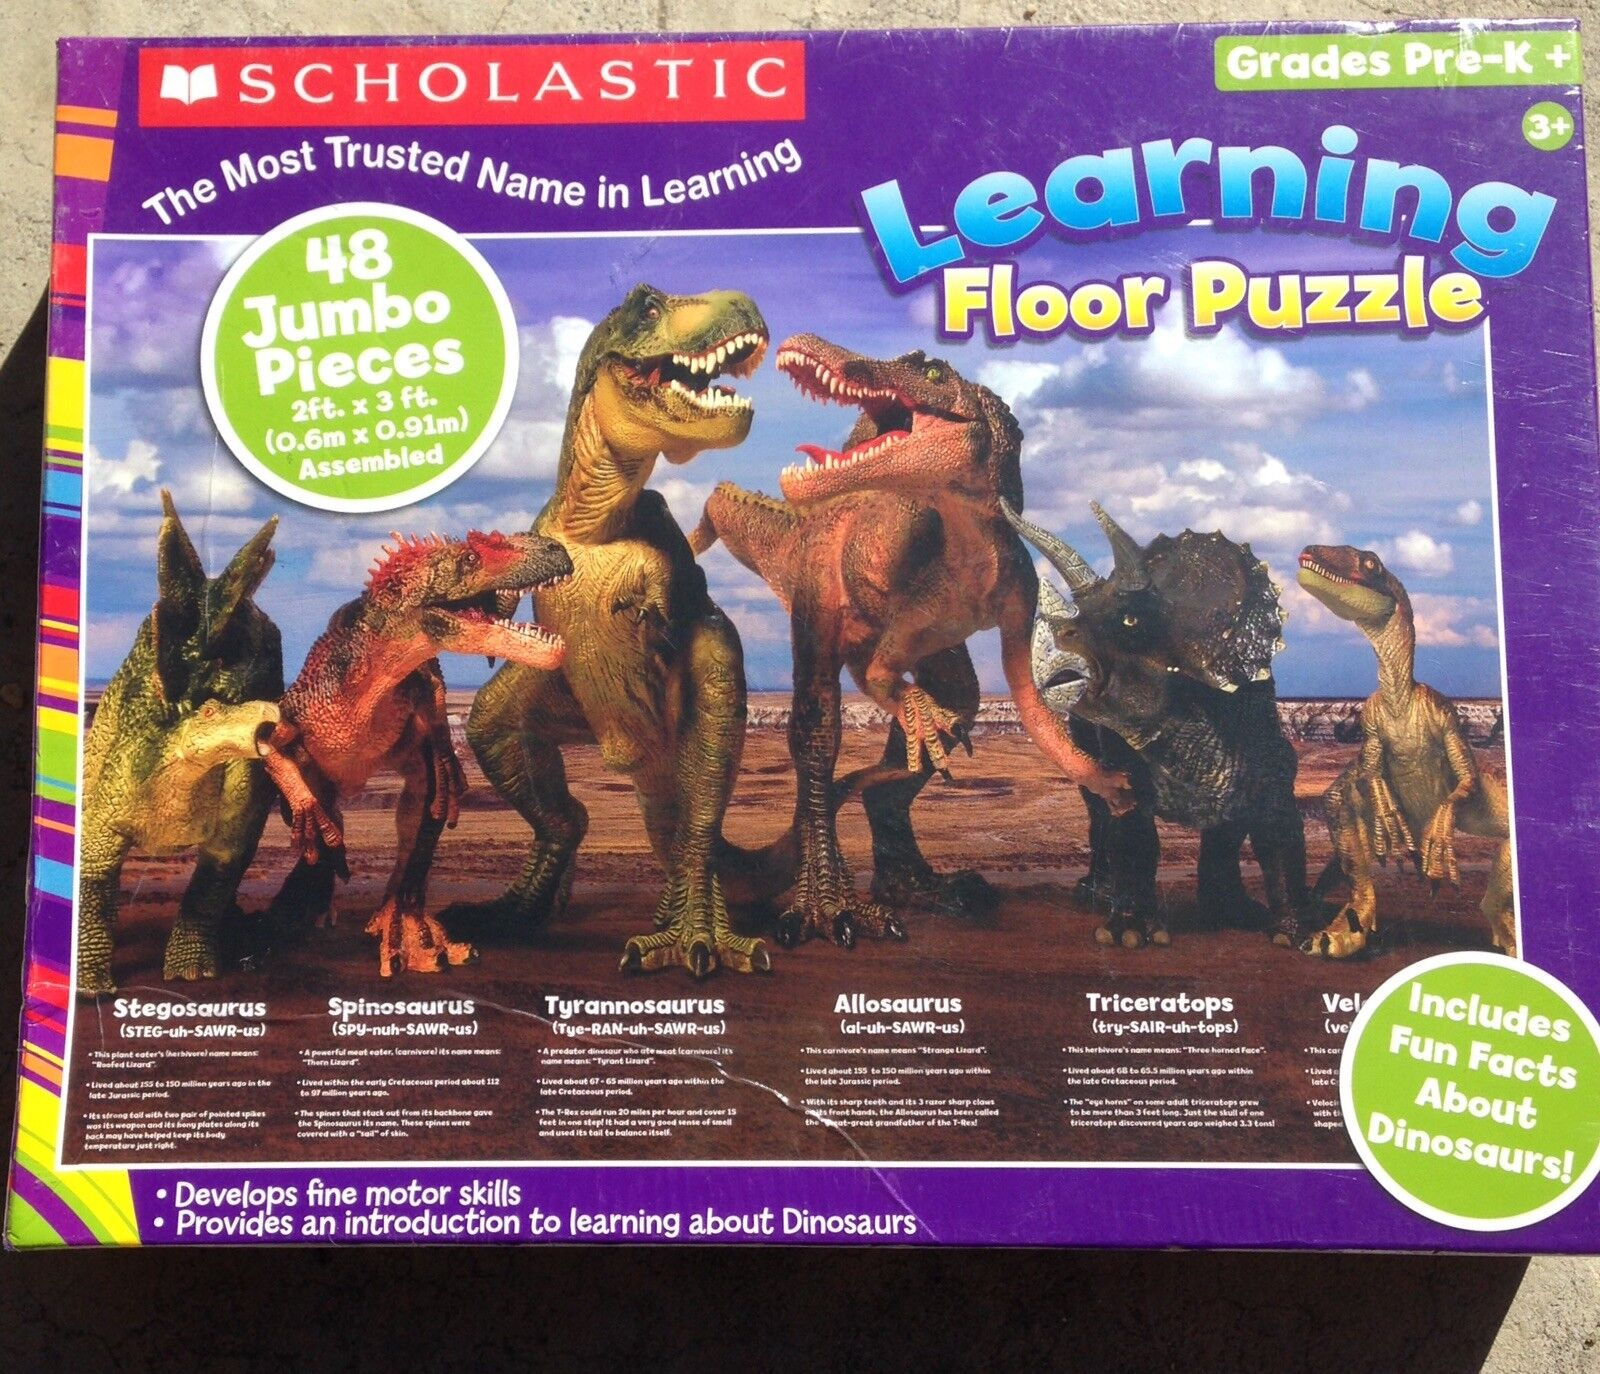 Dinosaur Scholastic Learning Fußboden Puzzle 48 Jumbo Pieces NEW  Fast Shipping